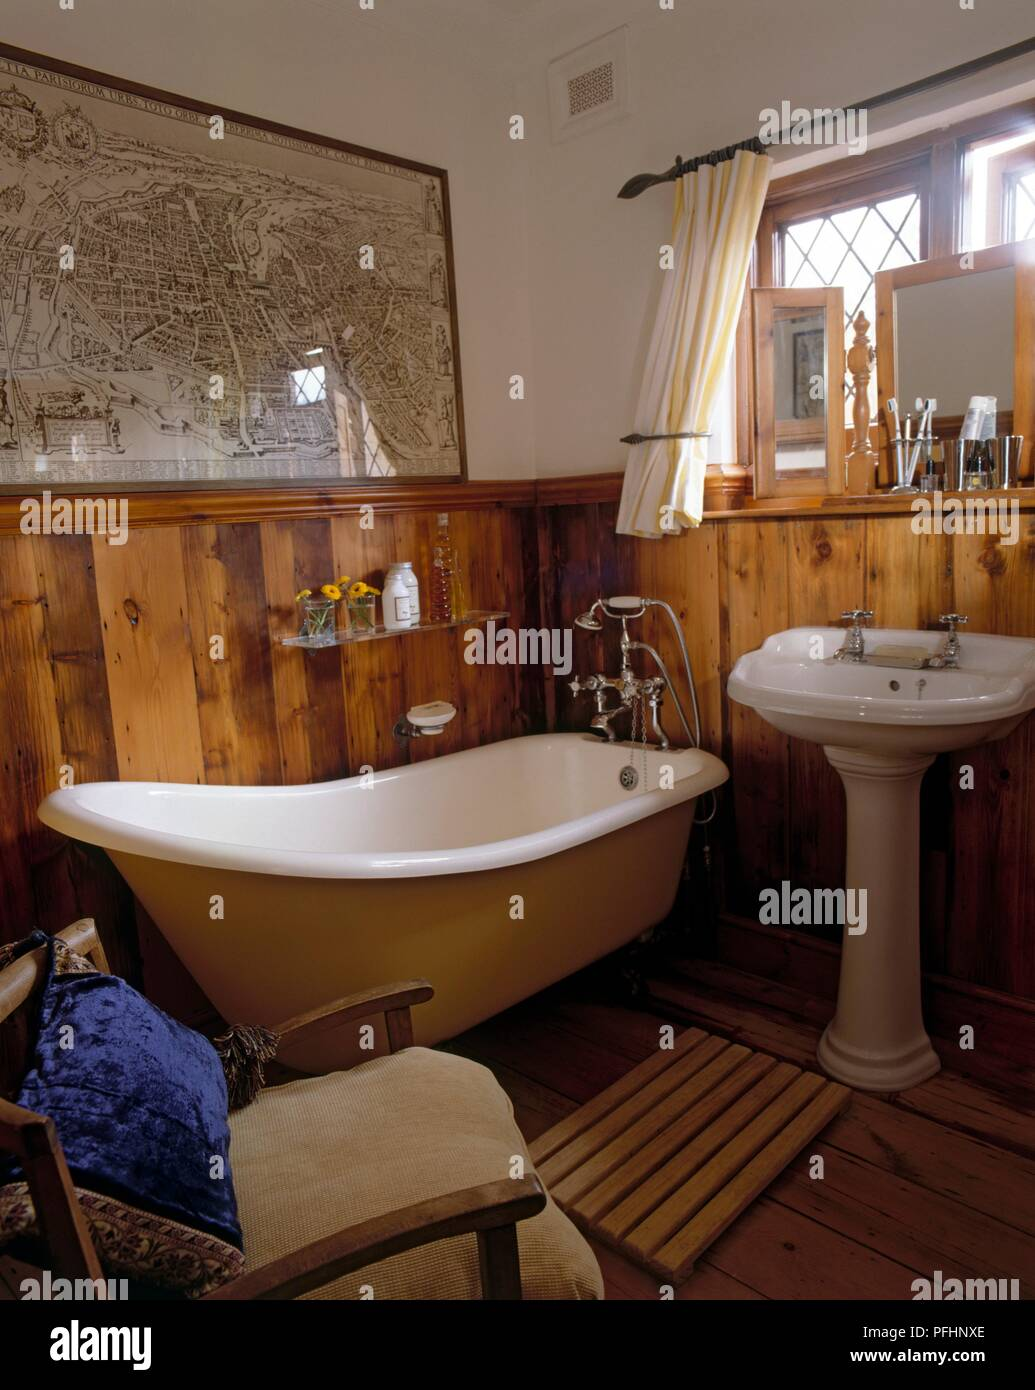 Bathroom containing standalone bath, sink and armchair, and ... on bed map, bedroom map, portico map, exterior map, basement map, newfoundland and labrador map, security map, cafeteria map, secret passage map, fallout shelter map,